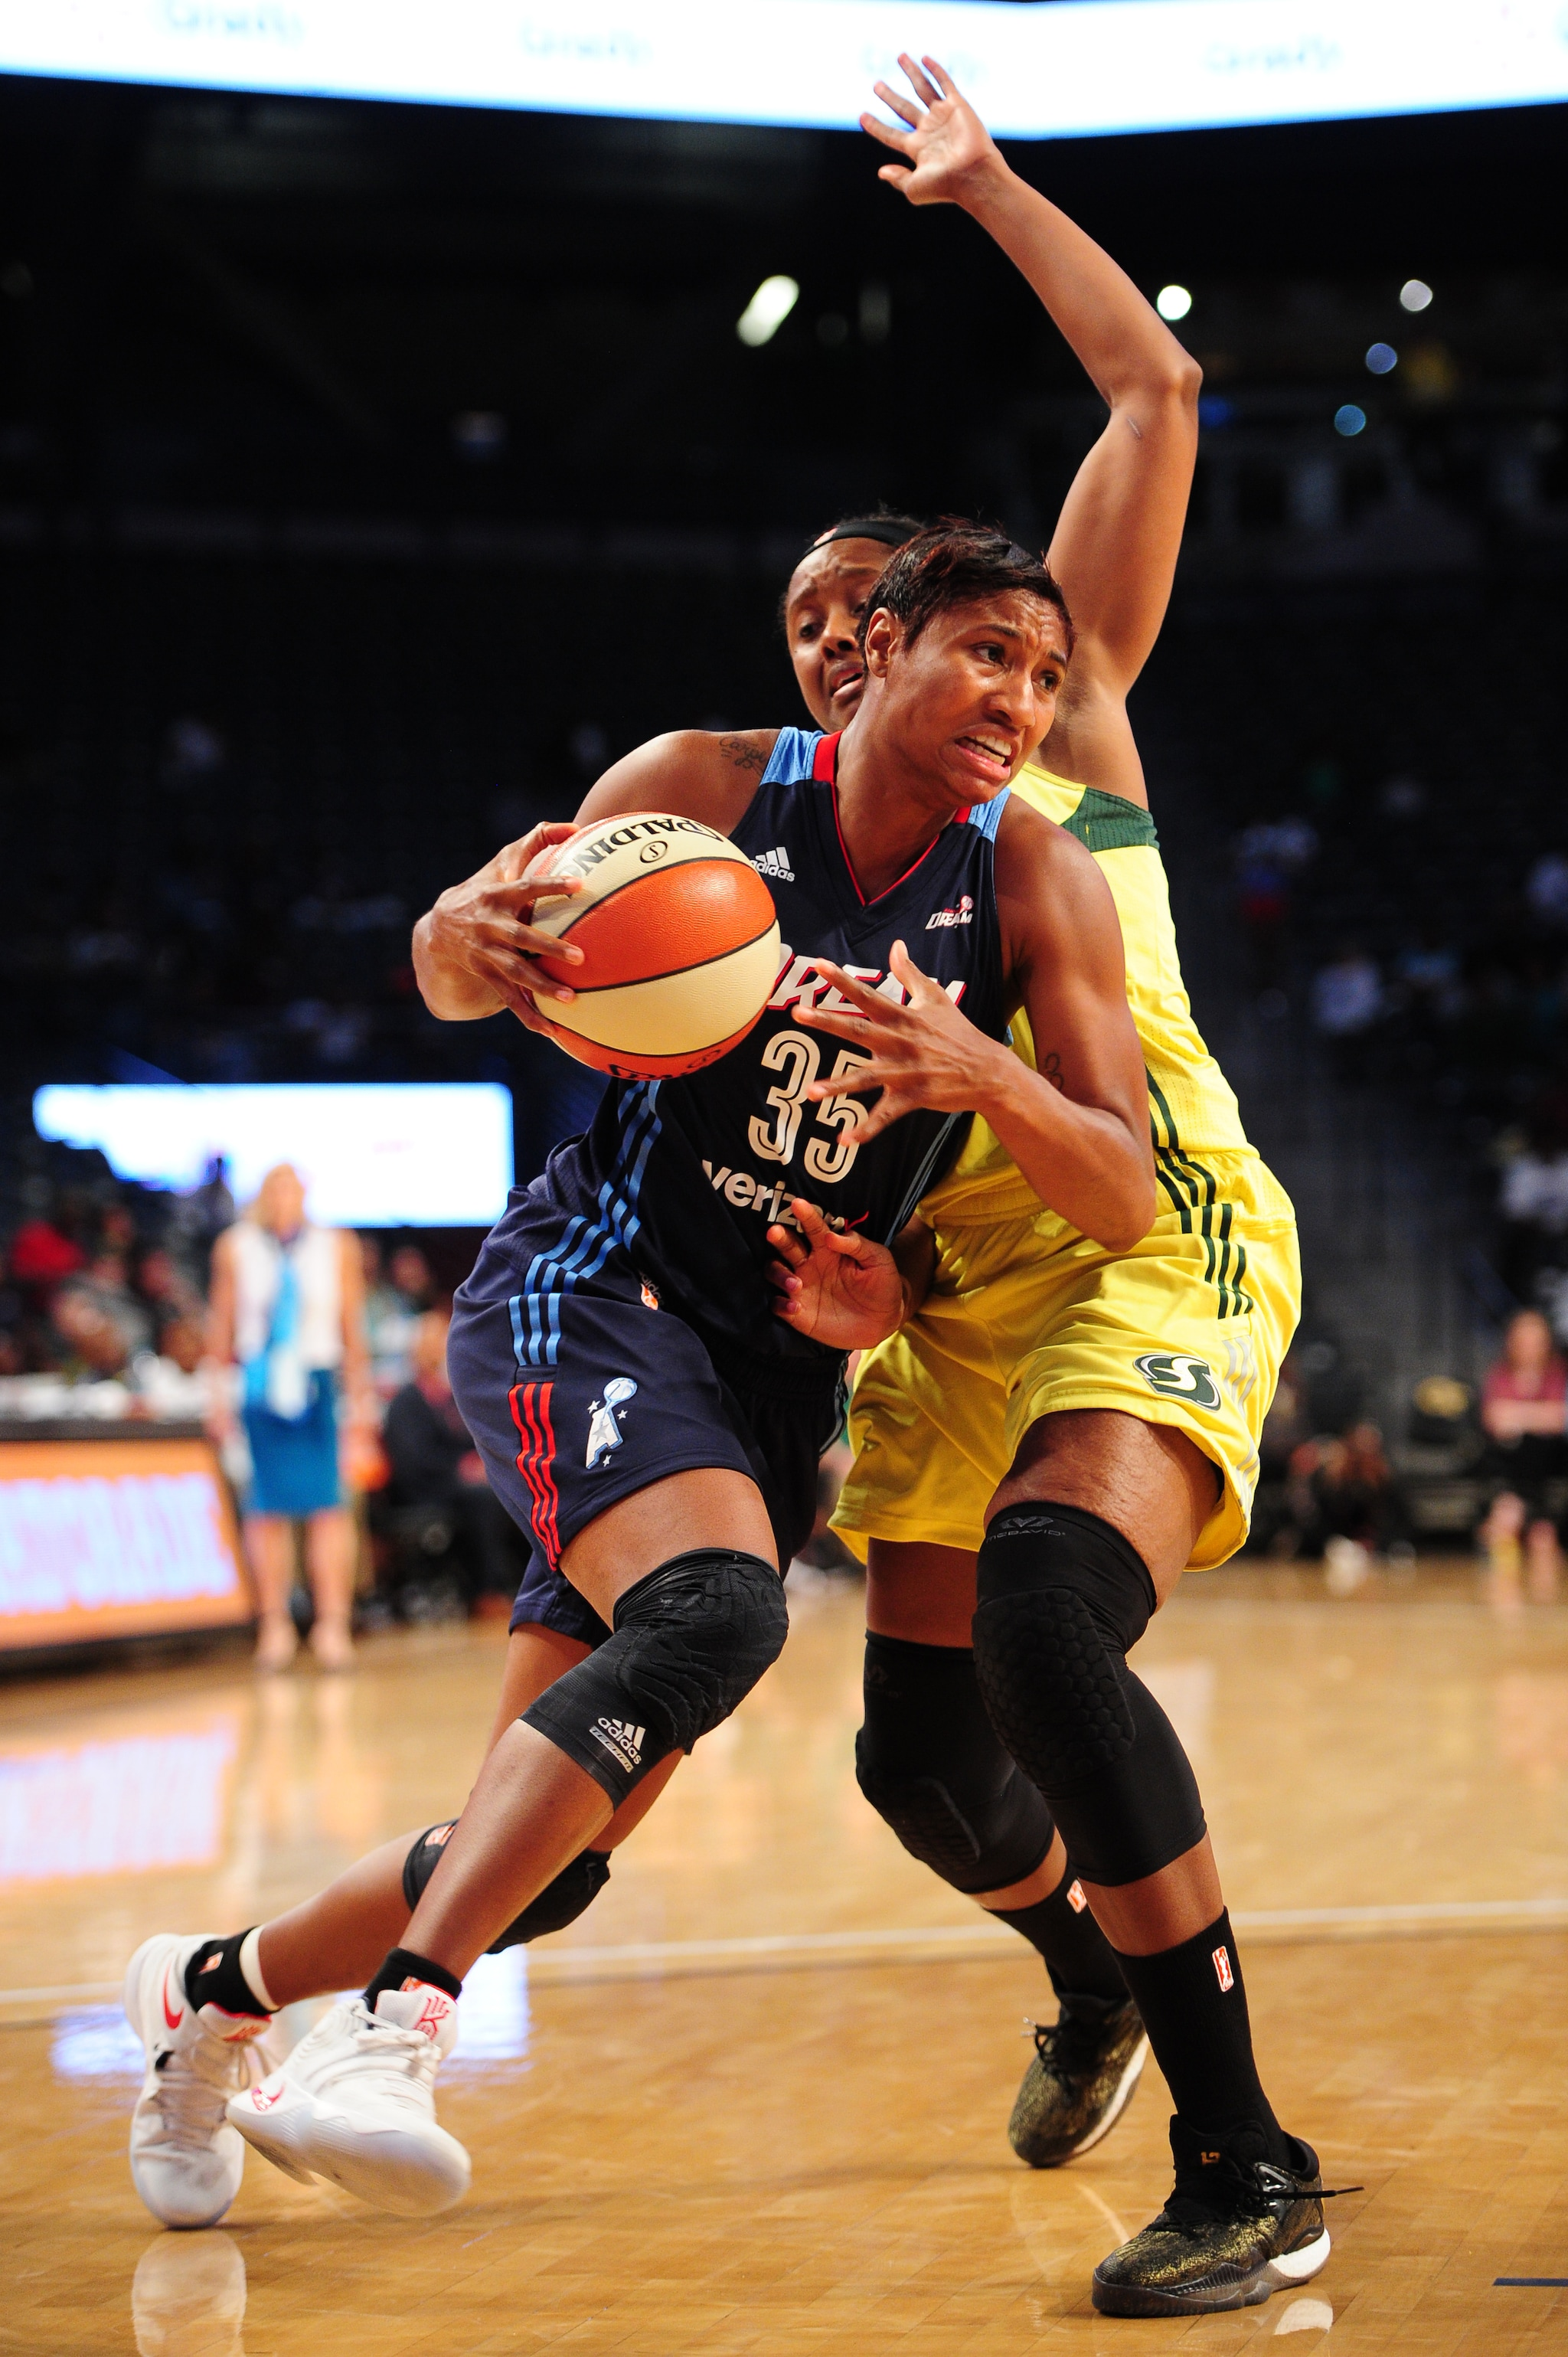 ATLANTA, GA - SEPTEMBER 21:  Angel McCoughtry #35 of the Atlanta Dream handles the ball against the Seattle Storm during Round One of the 2016 WNBA Playoffs on September 21, 2016 at the Hank McCamish Pavilion in Atlanta, Georgia.  NOTE TO USER: User expressly acknowledges and agrees that, by downloading and/or using this Photograph, user is consenting to the terms and conditions of the Getty Images License Agreement. Mandatory Copyright Notice: Copyright 2016 NBAE (Photo by Scott Cunningham/NBAE via Getty Images)